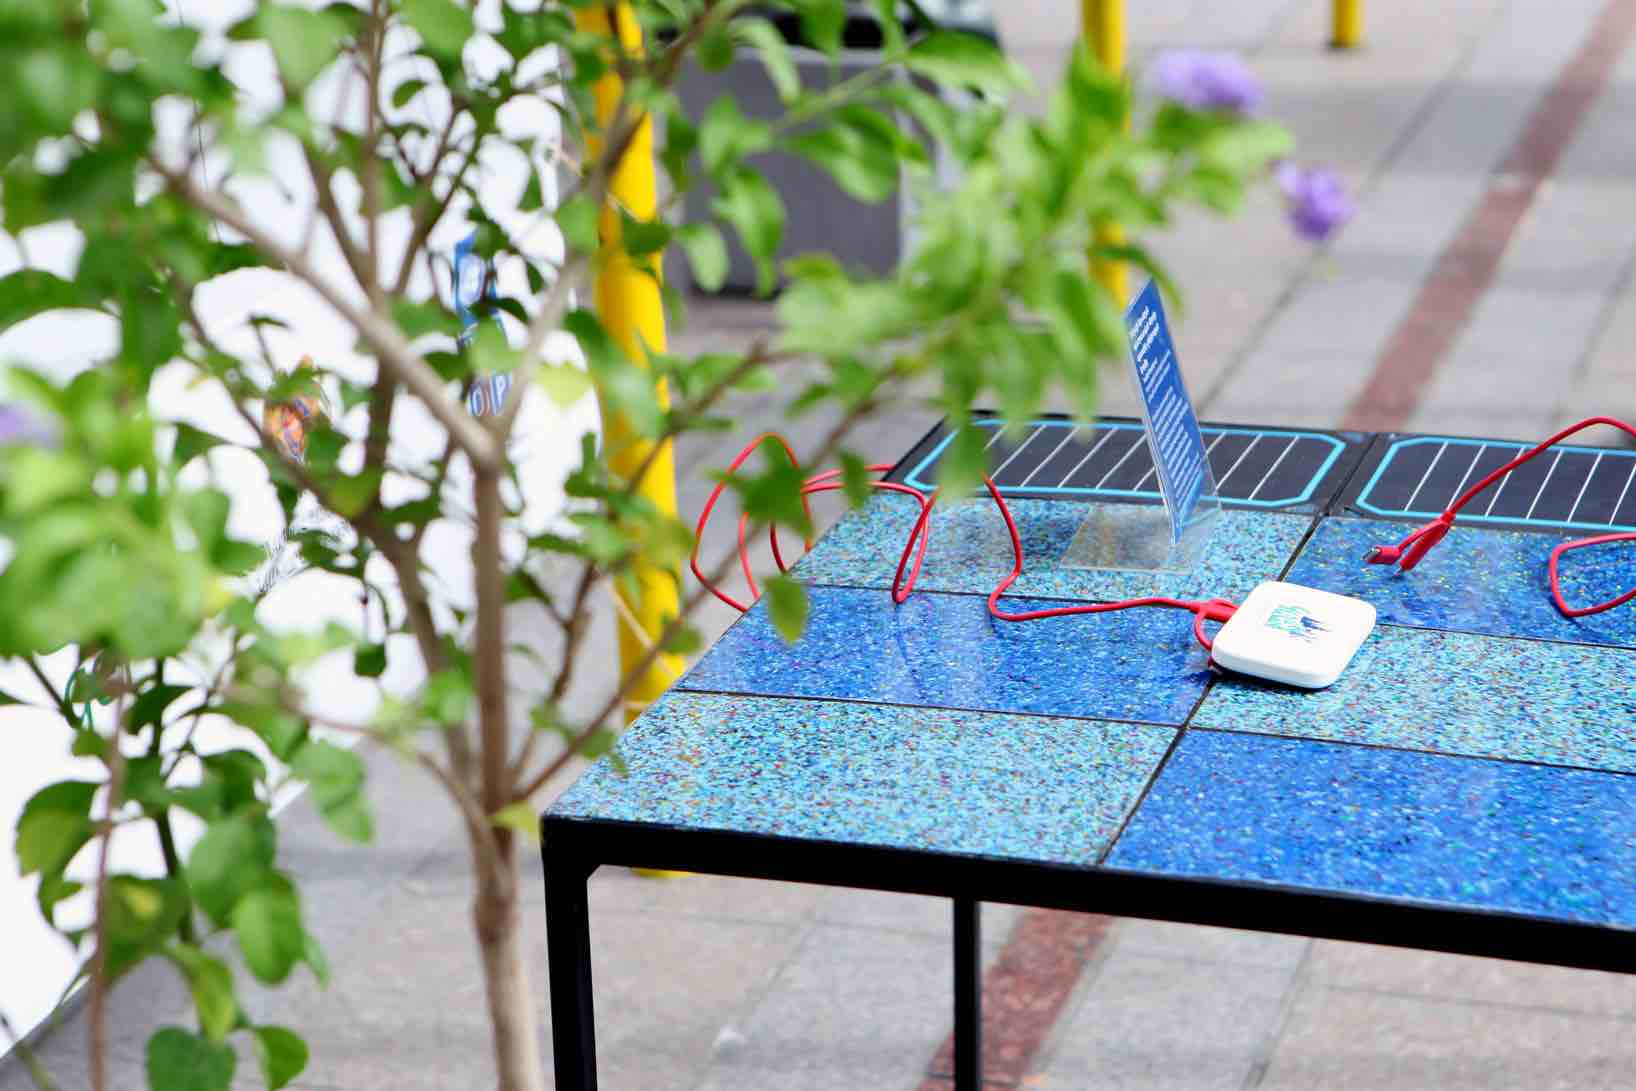 Our first prototype: Smart eco-table made of upcycled soft drink caps